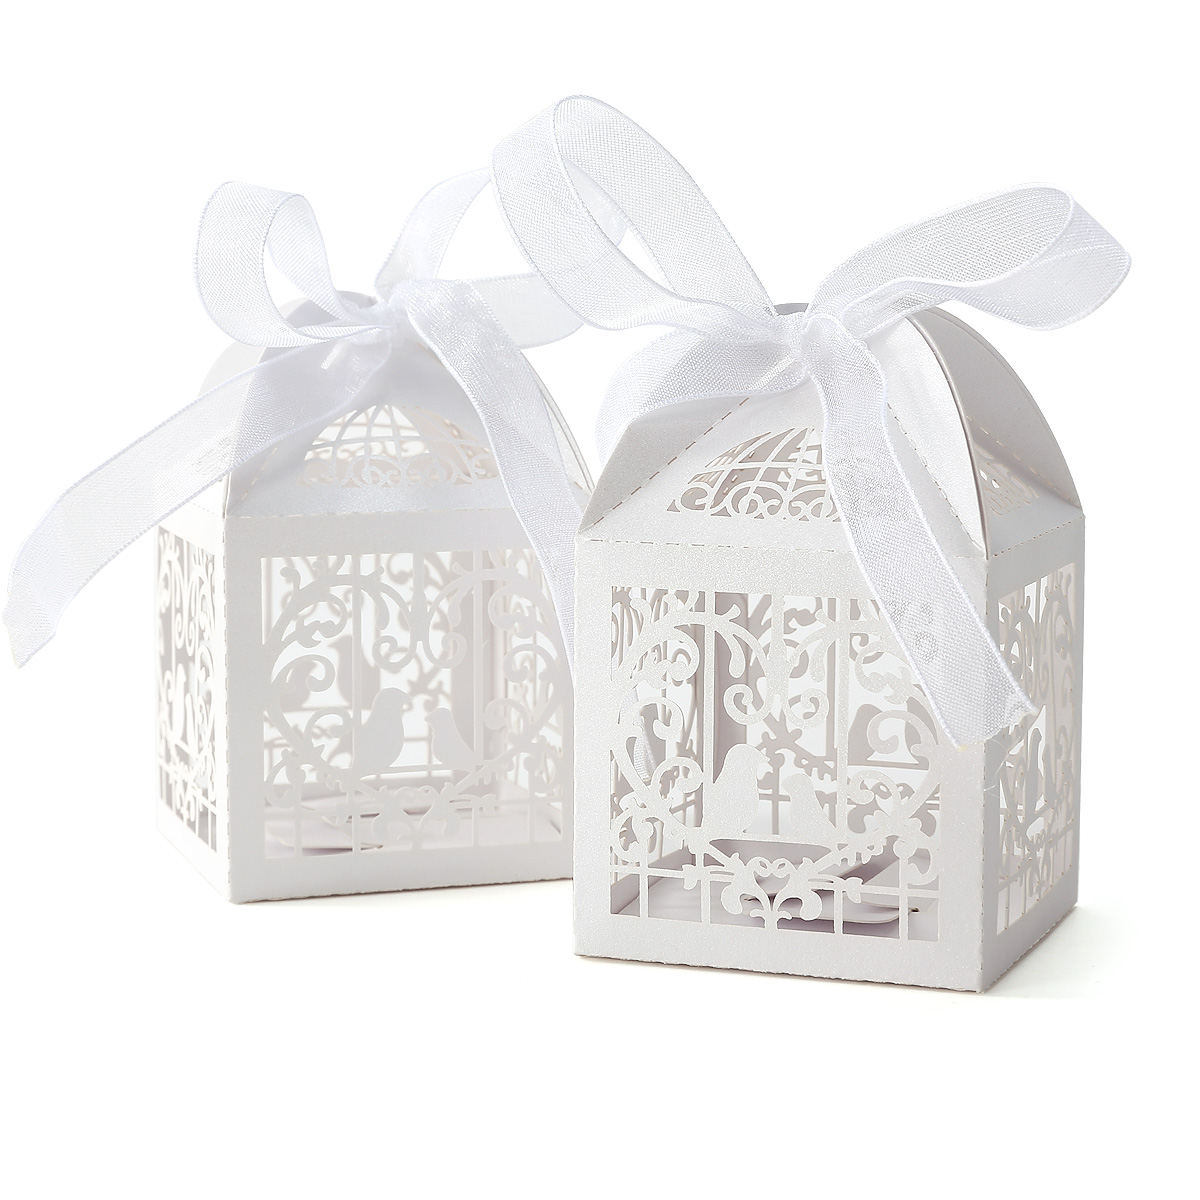 Candy Shaped Favor Boxes: Rowling pcs heart shaped wedding favour ...